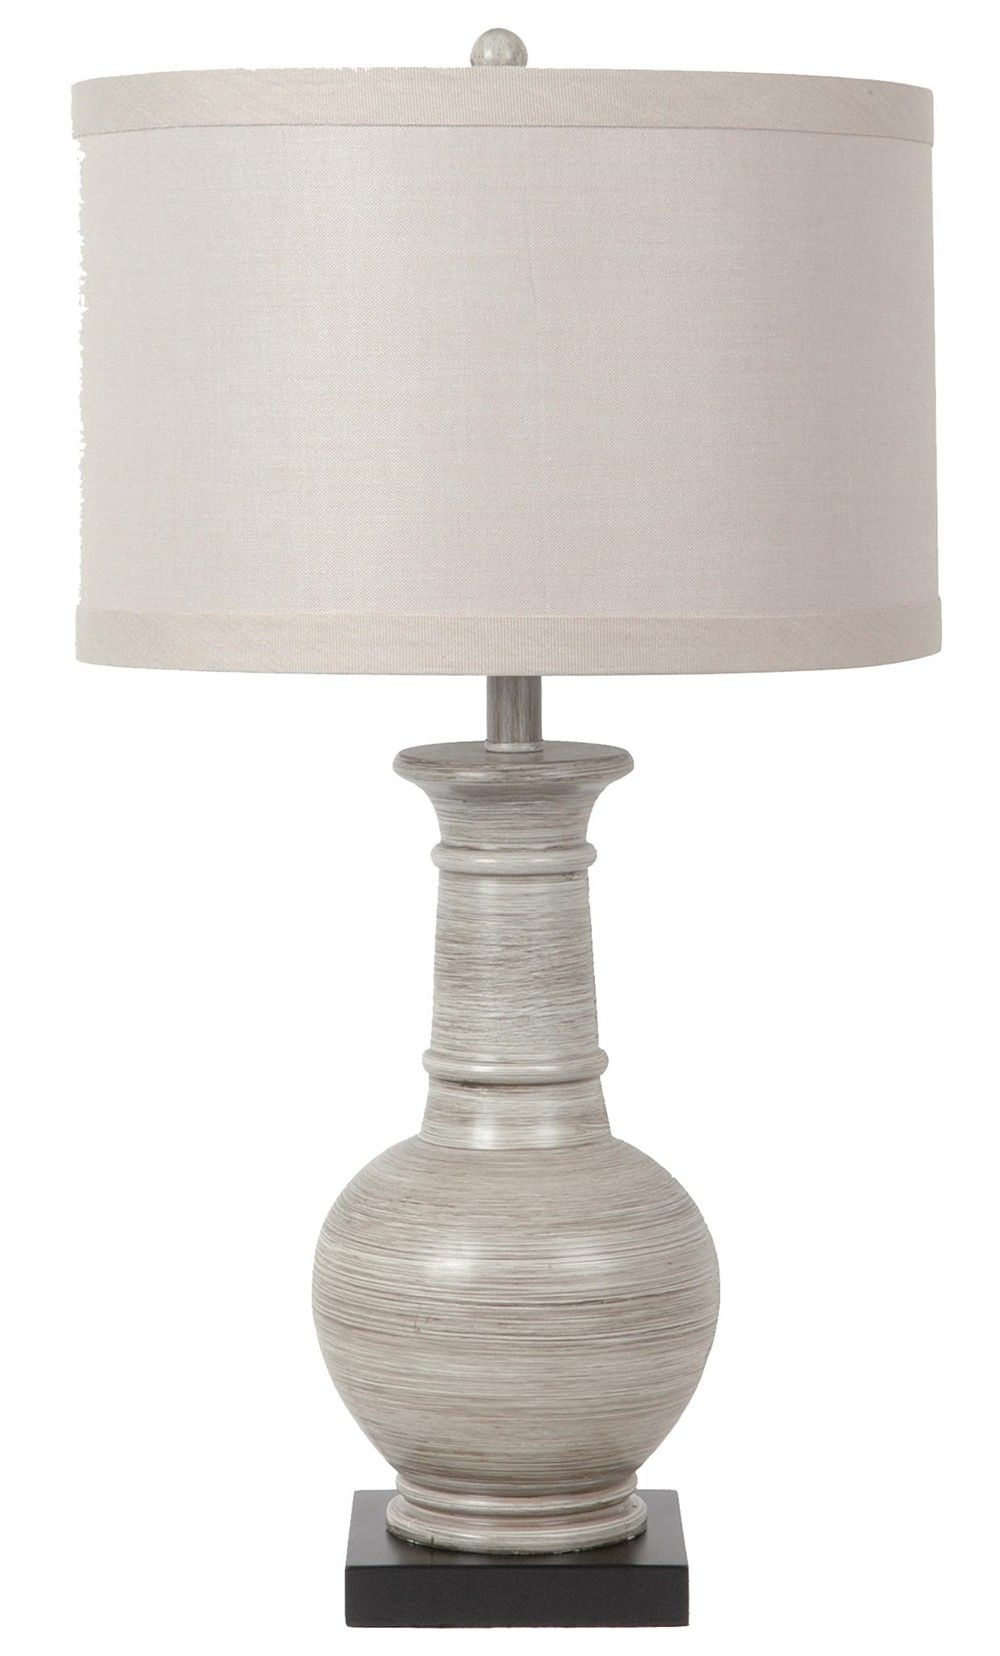 "28"" H 15x15x10"" Shade Crestview Collection Table lamp"